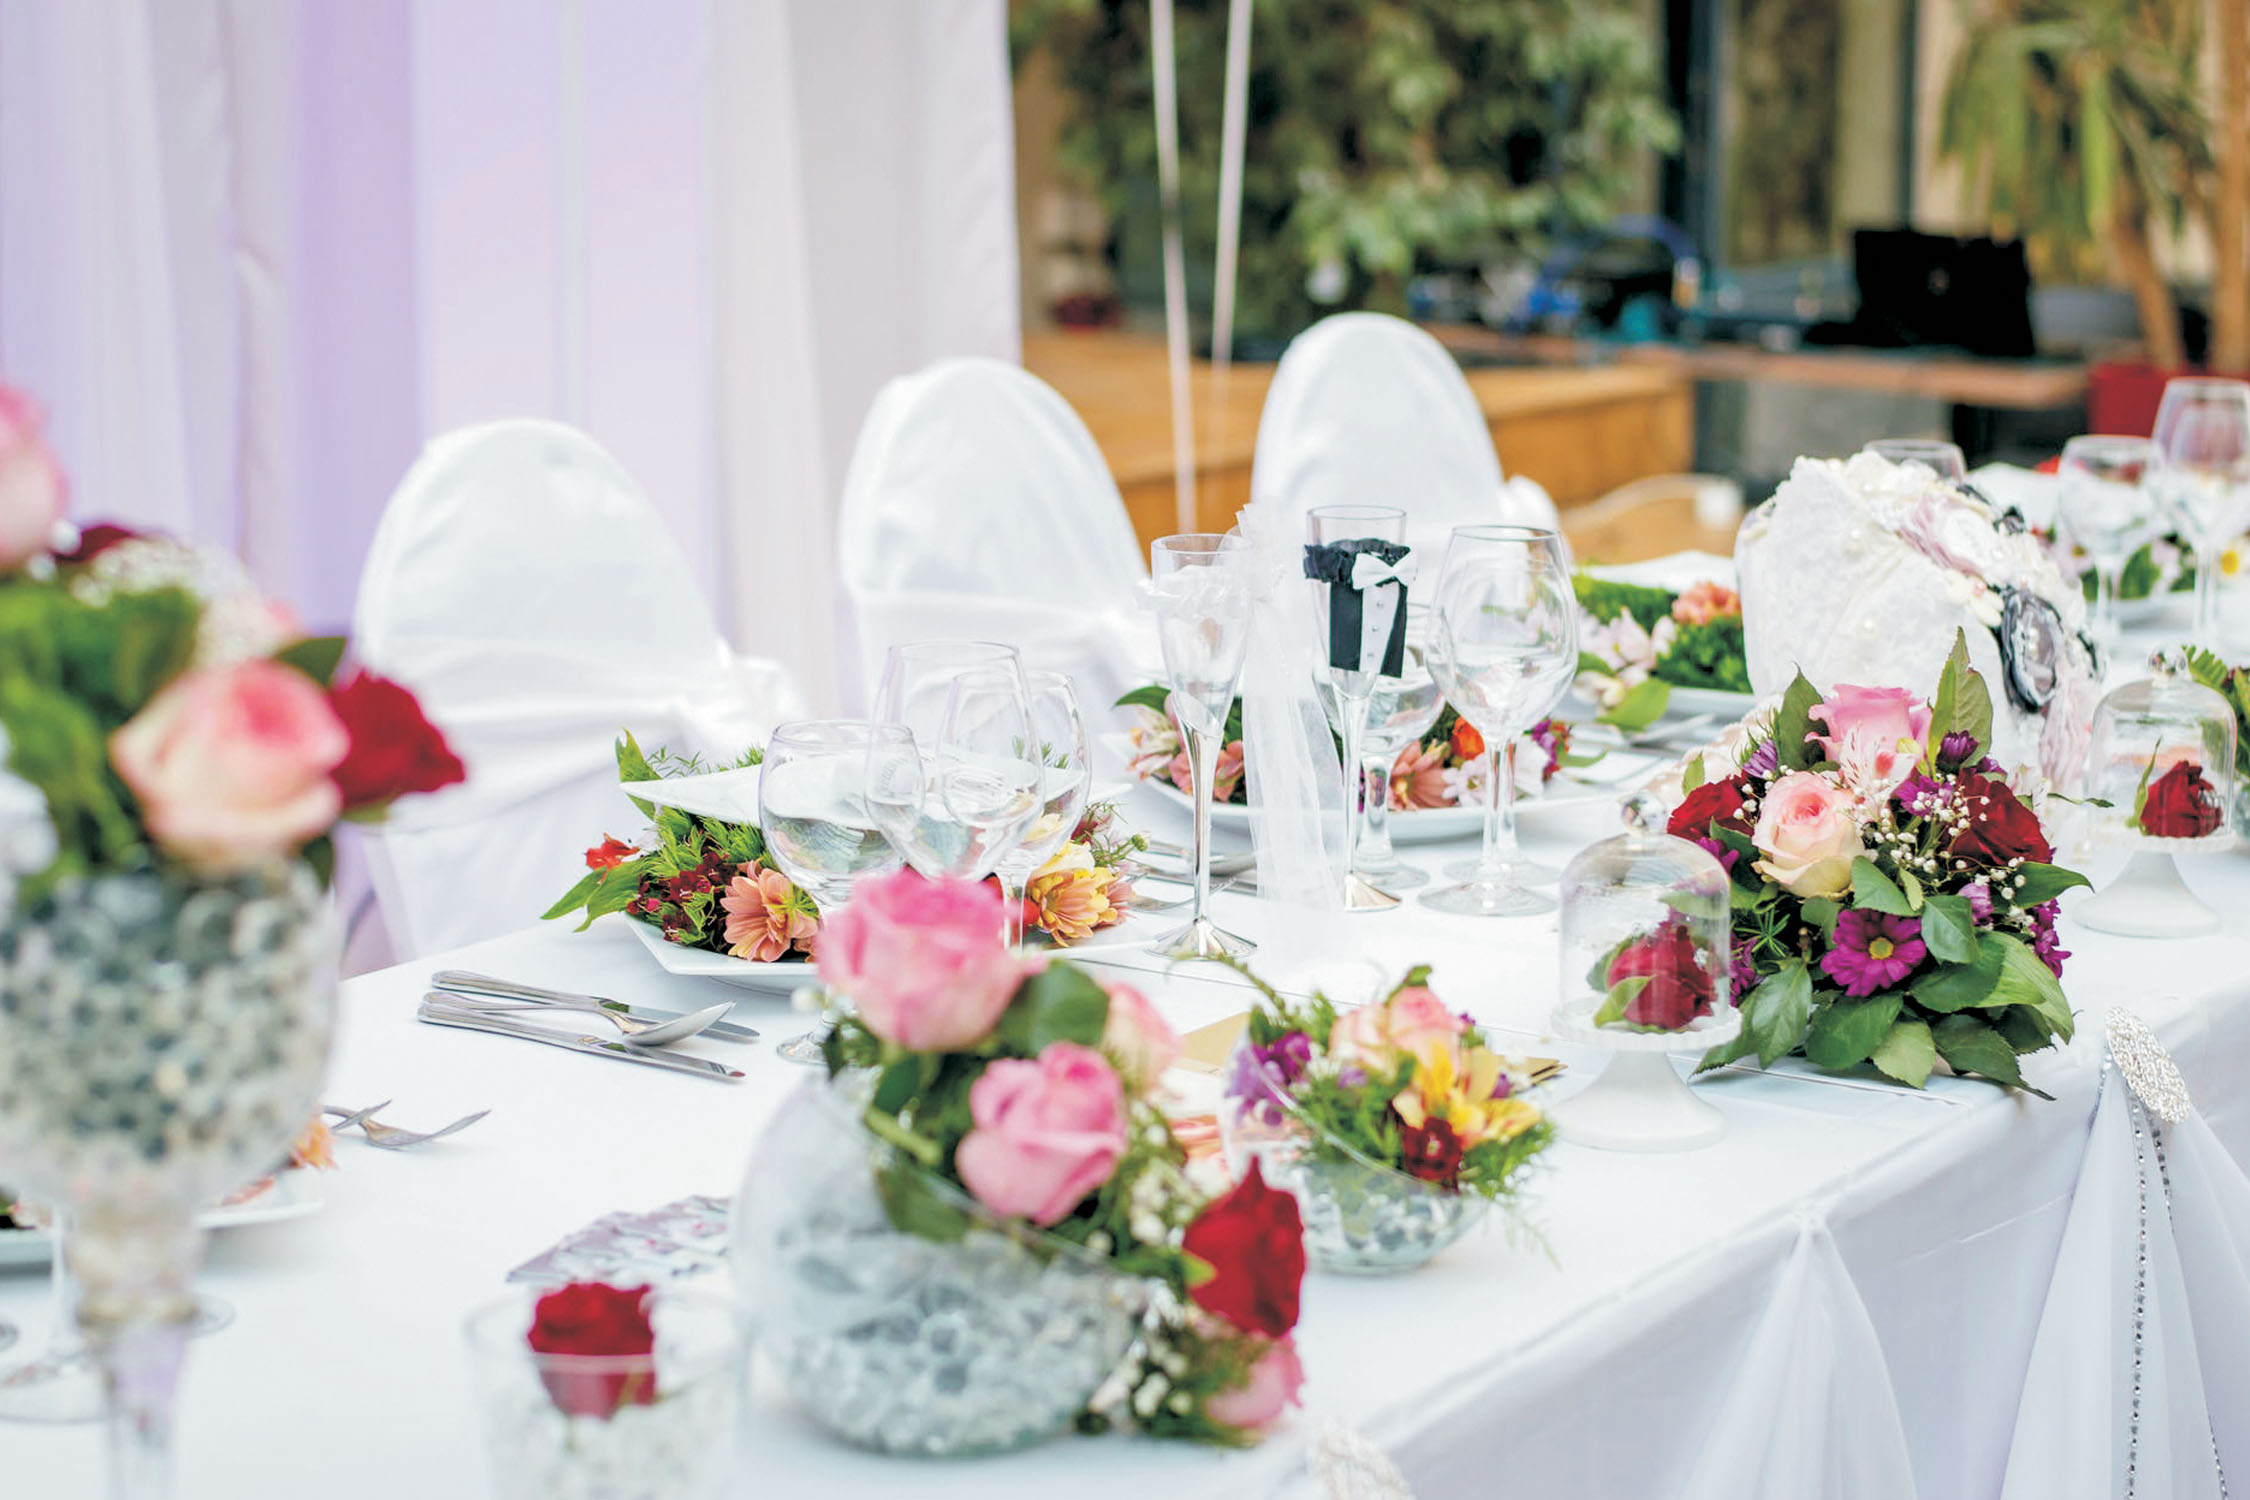 Tips para organizar una boda inolvidable